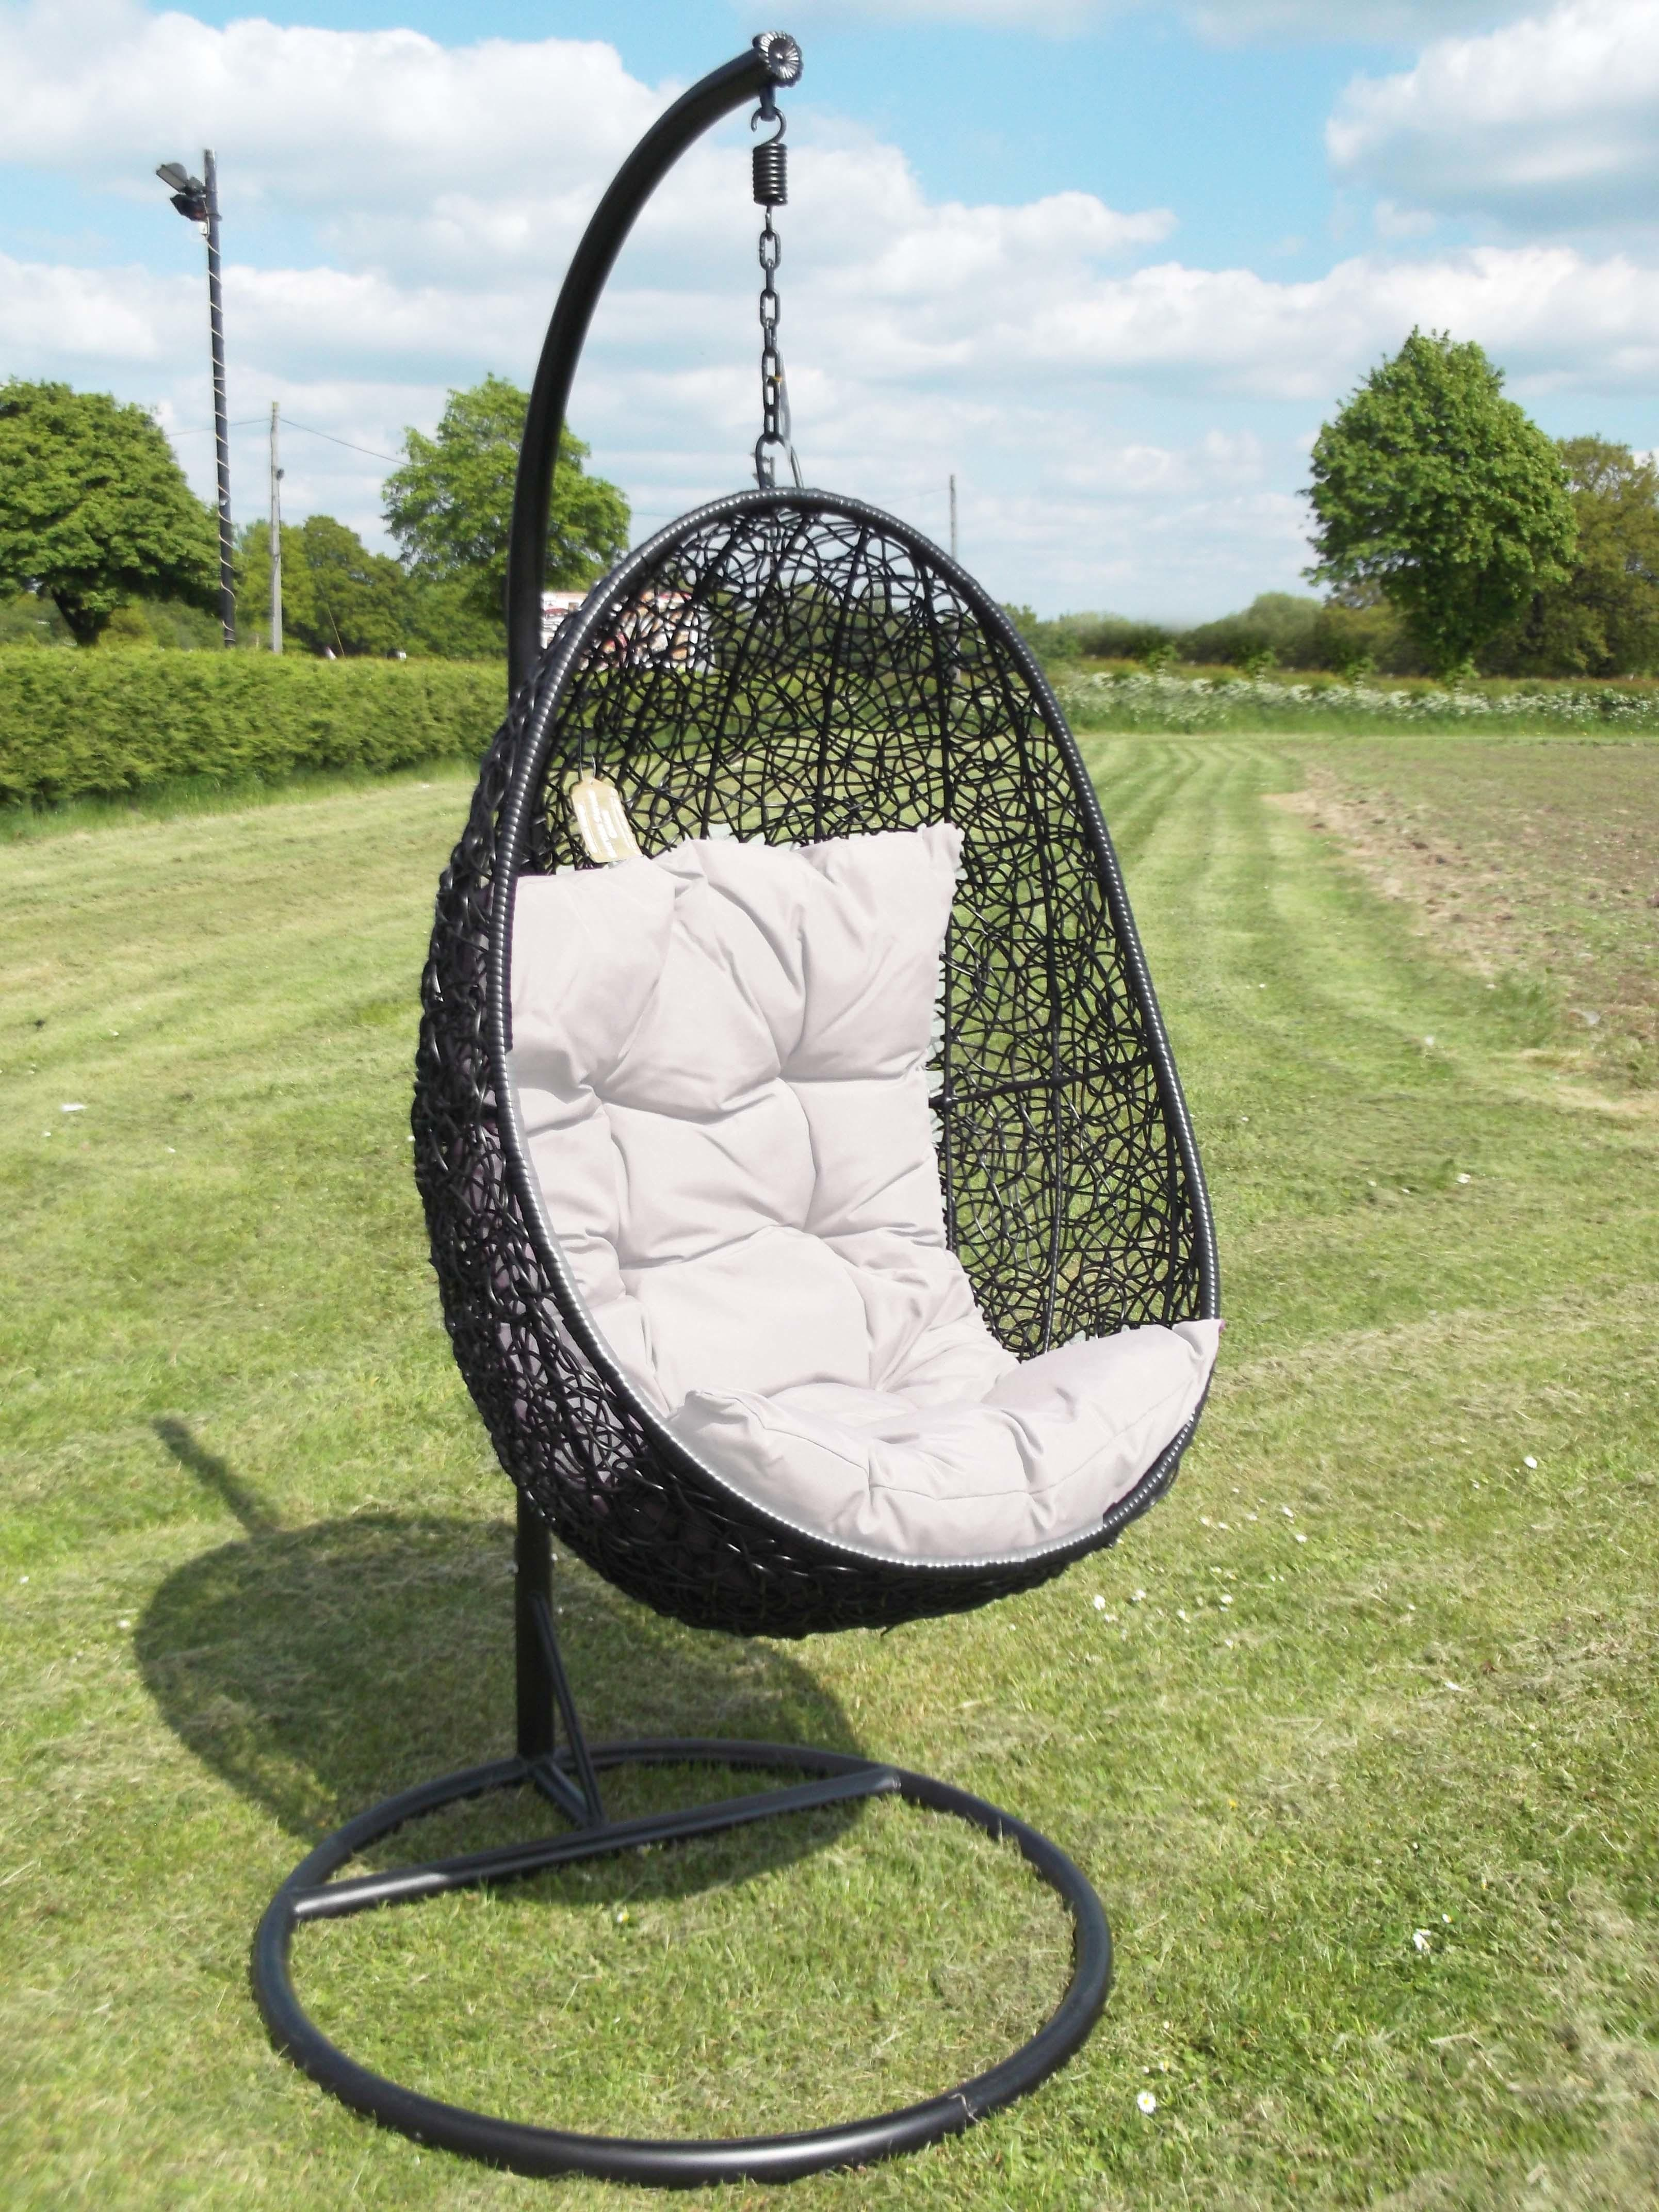 Oval Black Wicker Hanging Swing Chair White Cushion